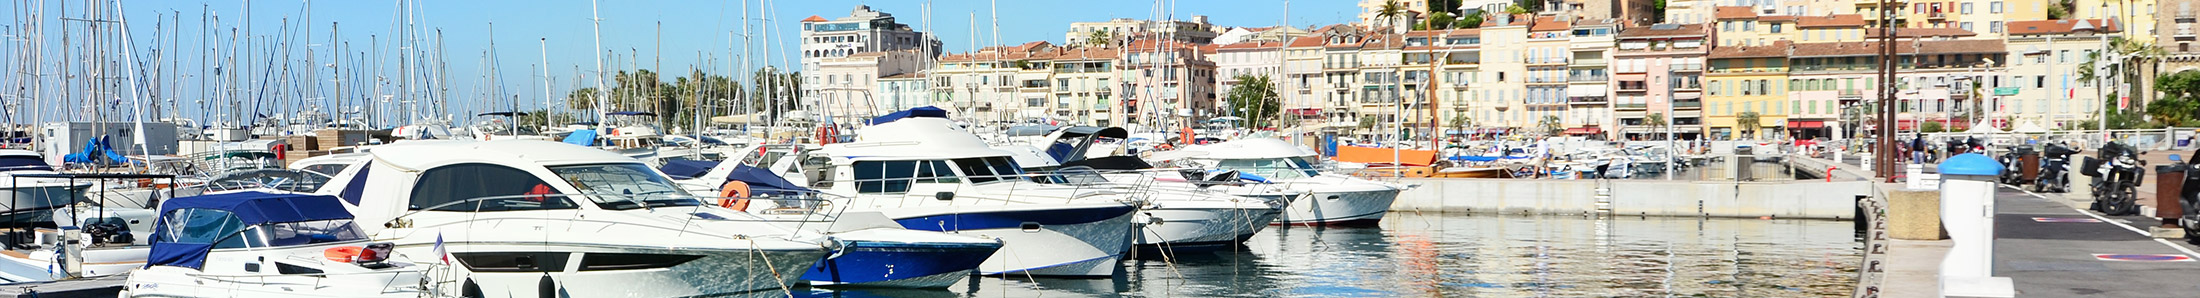 Old haven in Cannes